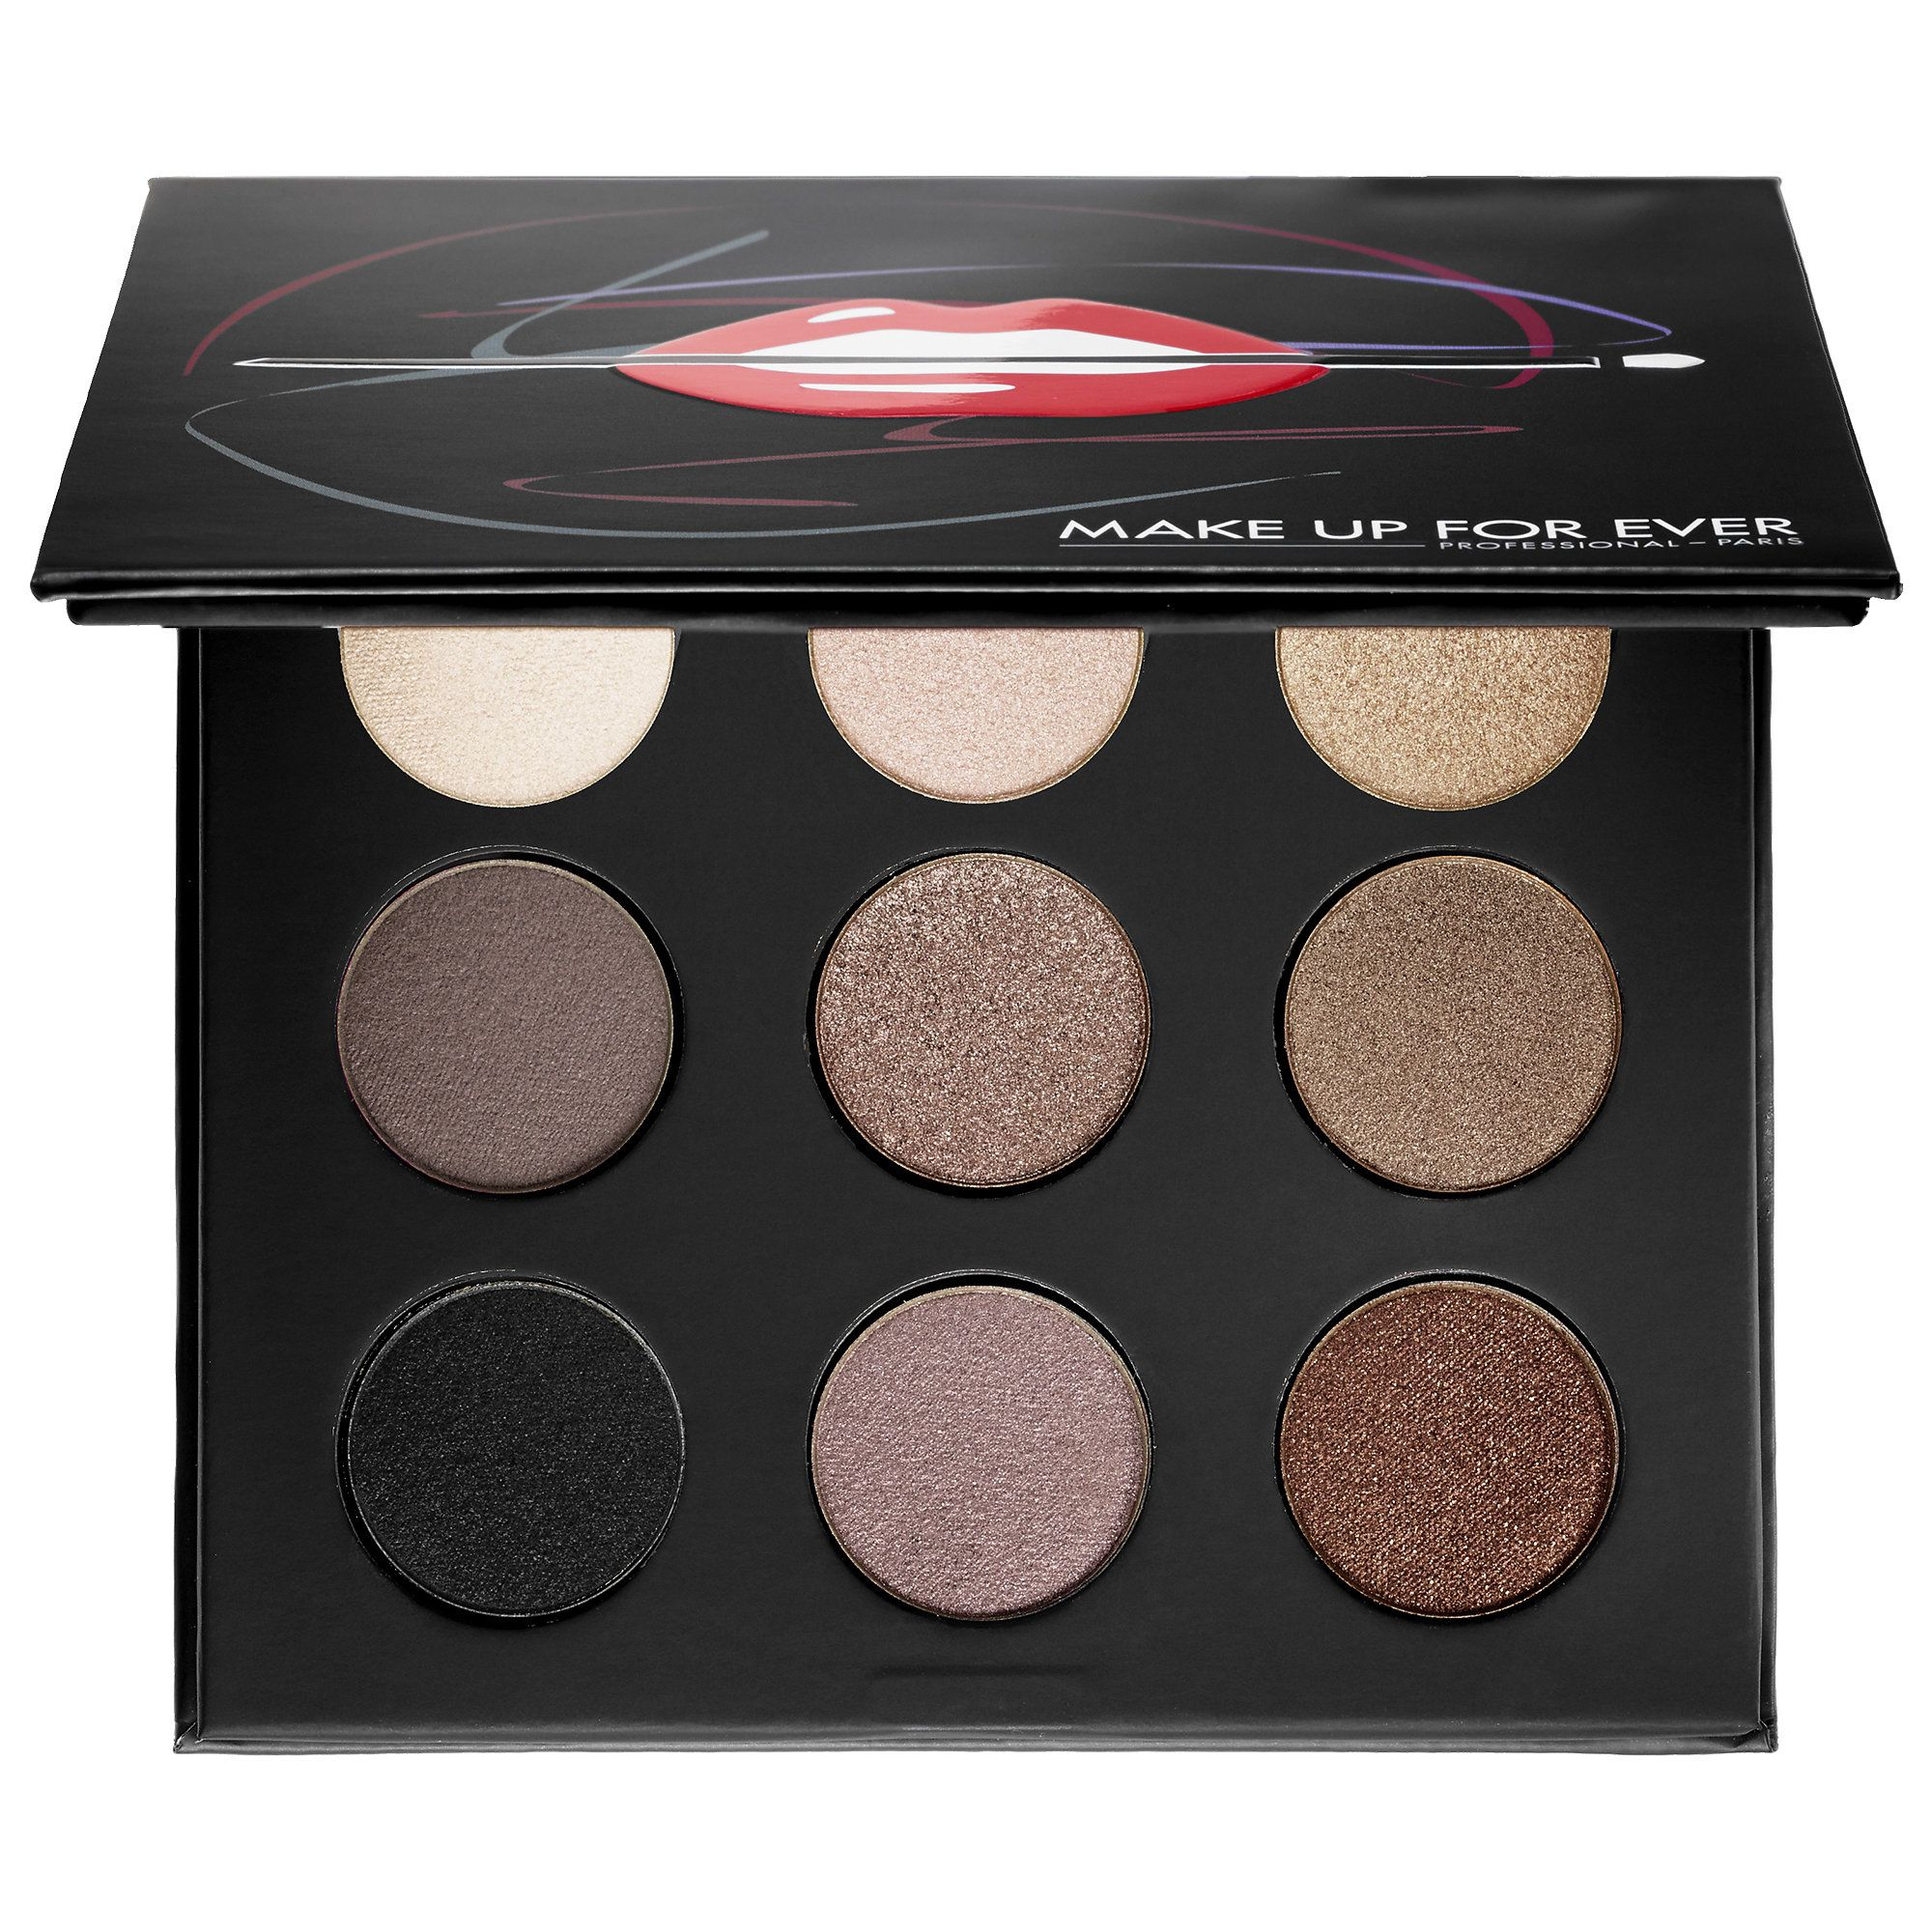 A collectible, eye shadow palette with nine musthave